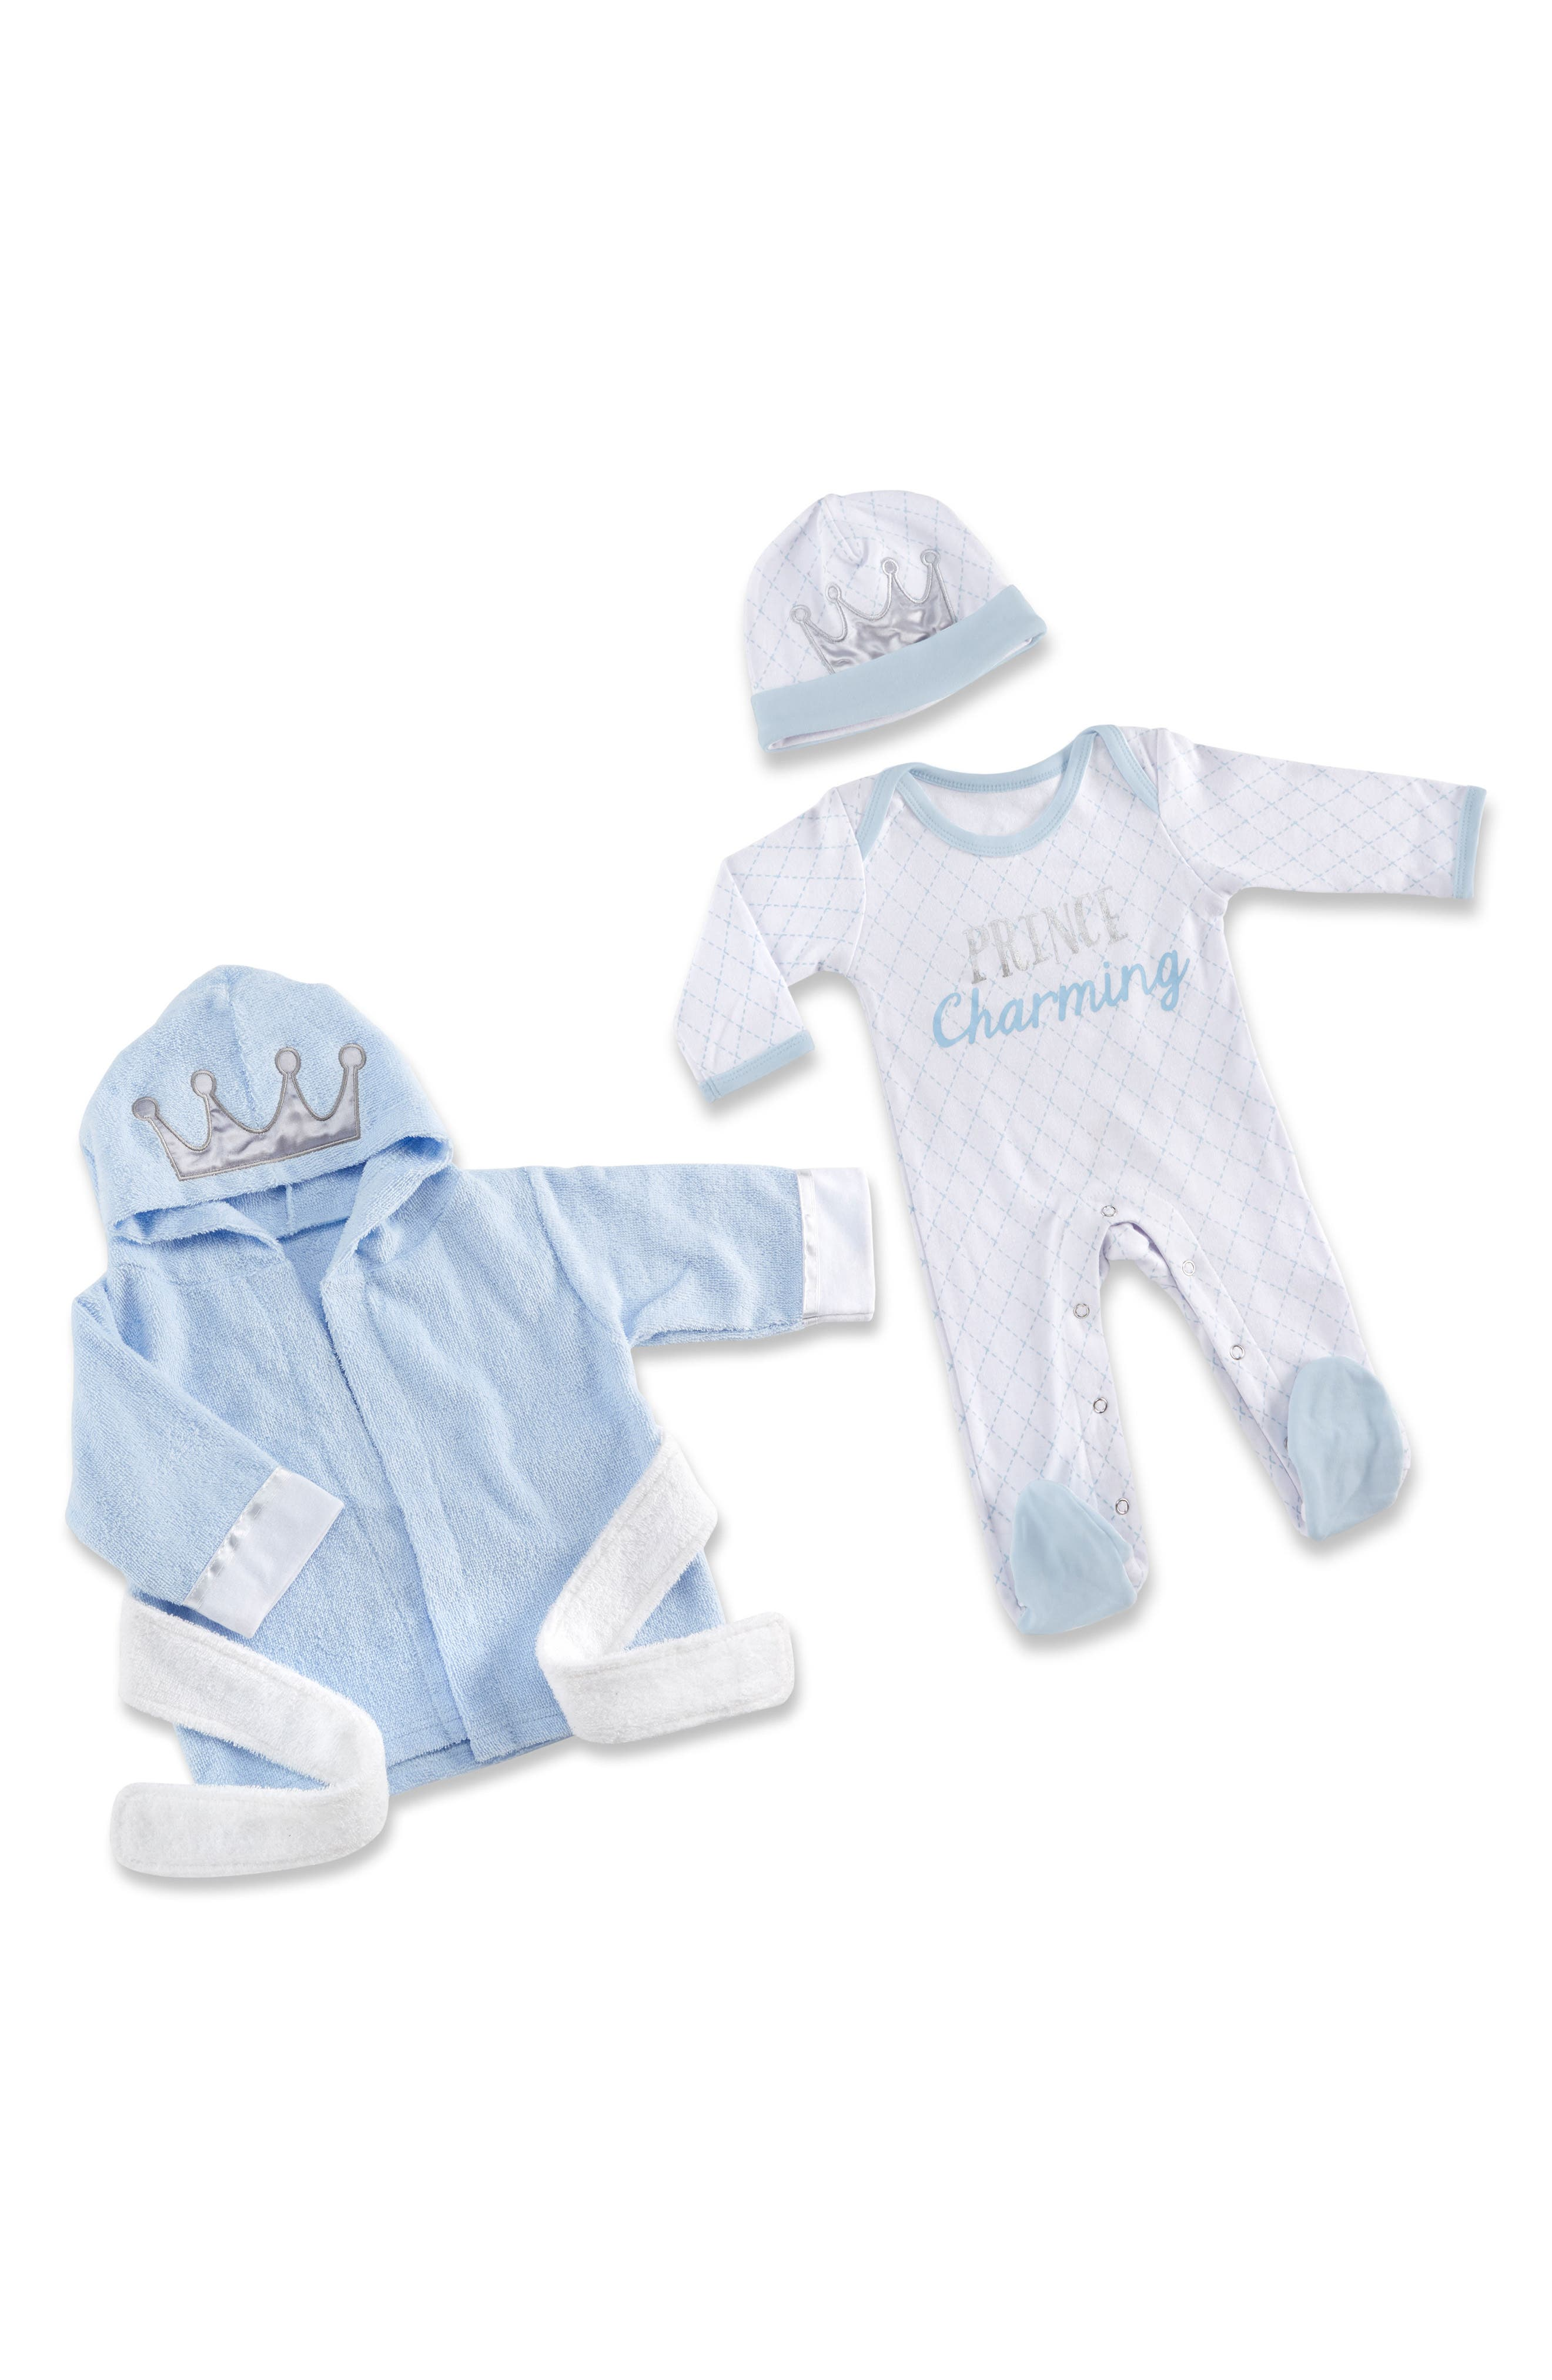 Little Prince Plush Robe, One-Piece Pajamas & Hat Set,                             Main thumbnail 1, color,                             Blue/ White